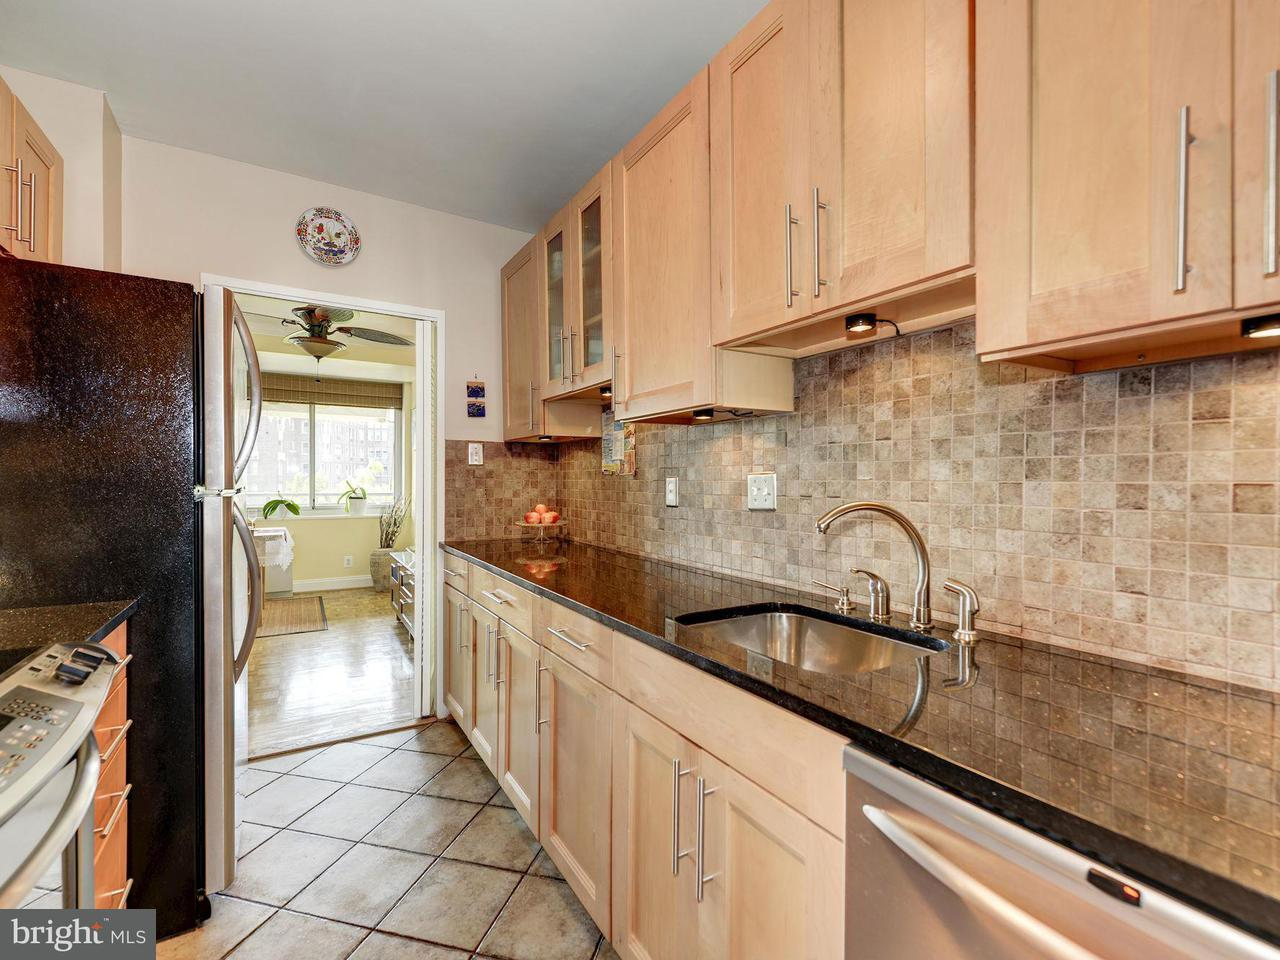 Additional photo for property listing at 3900 WATSON PL NW #A-6B 3900 WATSON PL NW #A-6B Washington, District Of Columbia 20016 Verenigde Staten